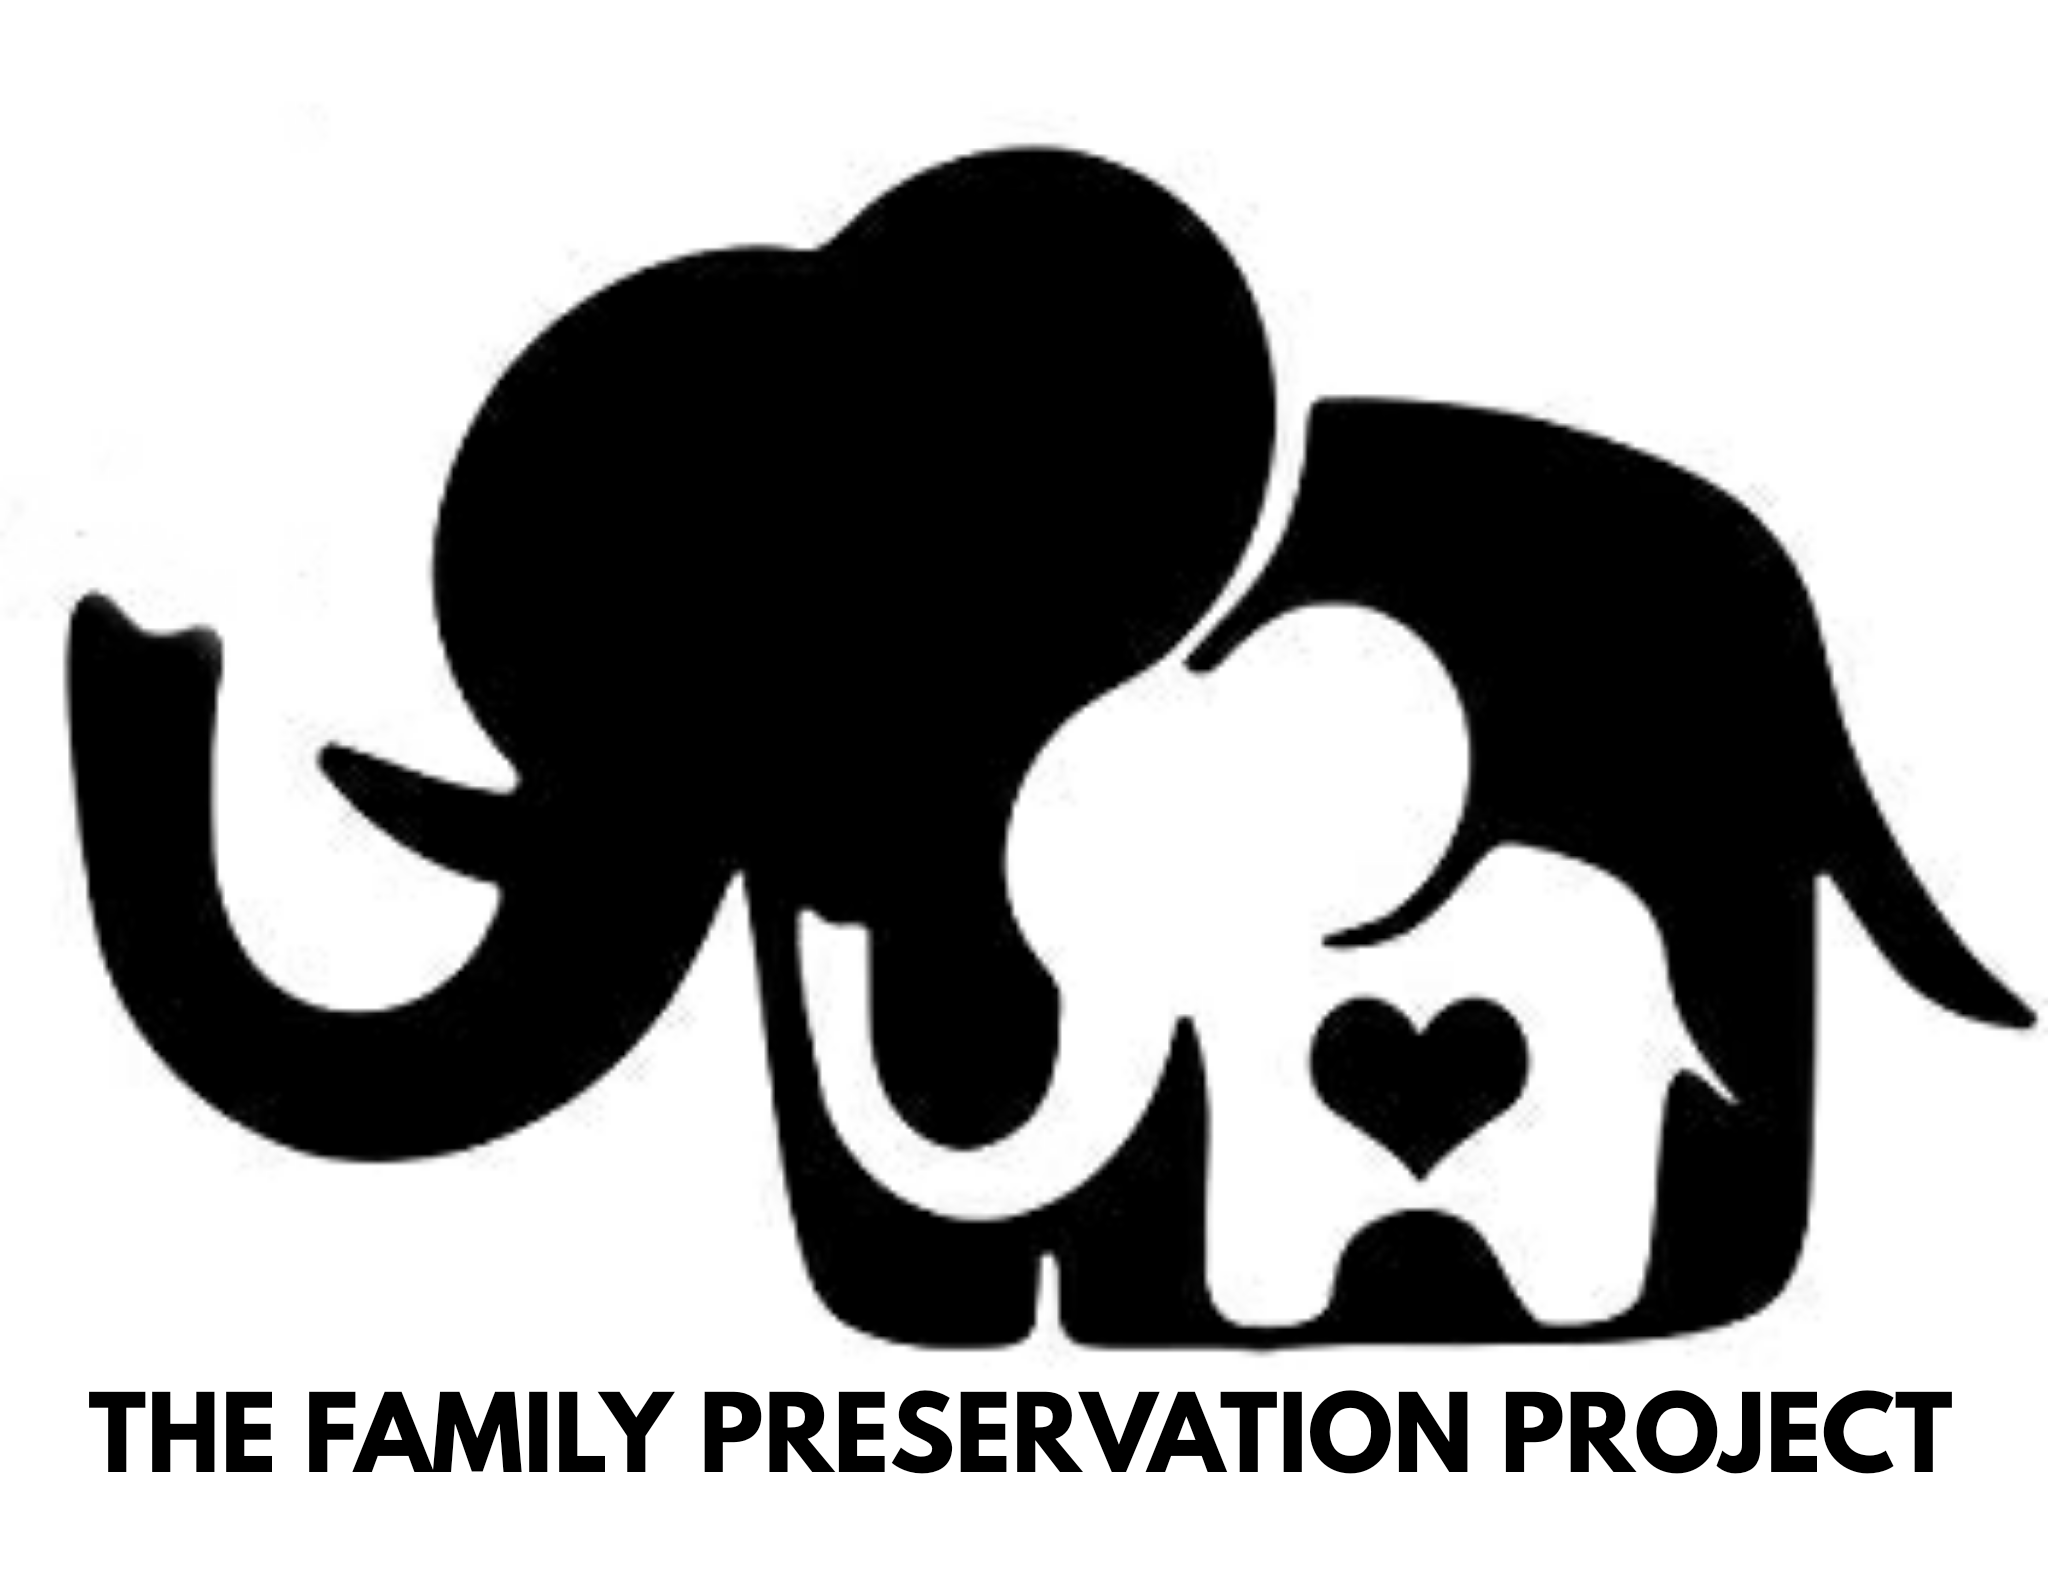 The Family Preservation Project